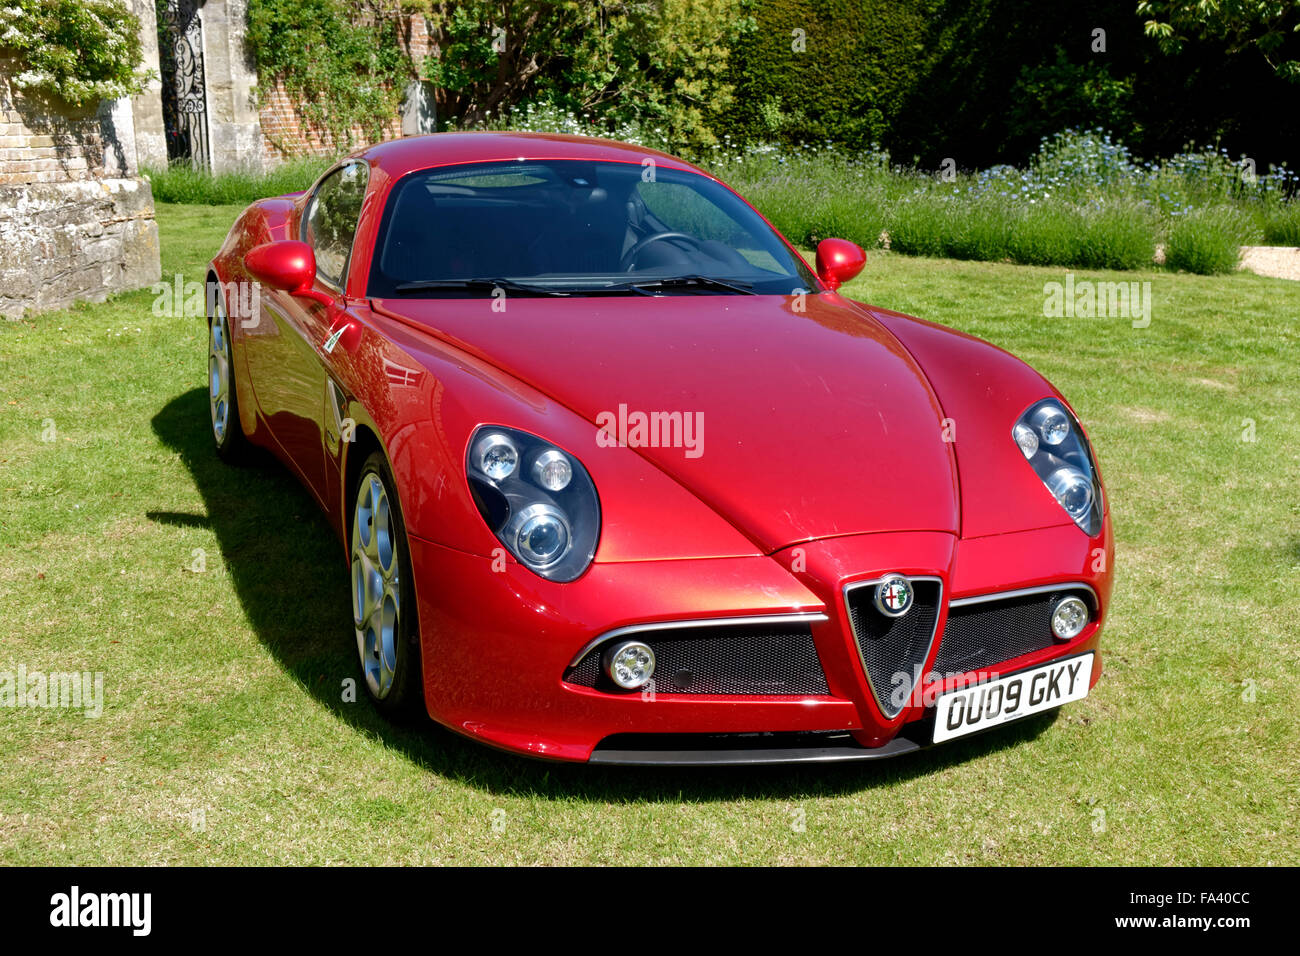 An Alfa Romeo 8C Competizione Sports Coupe motor car at the Wilton House Classic & Supercar Show, Wiltshire, - Stock Image